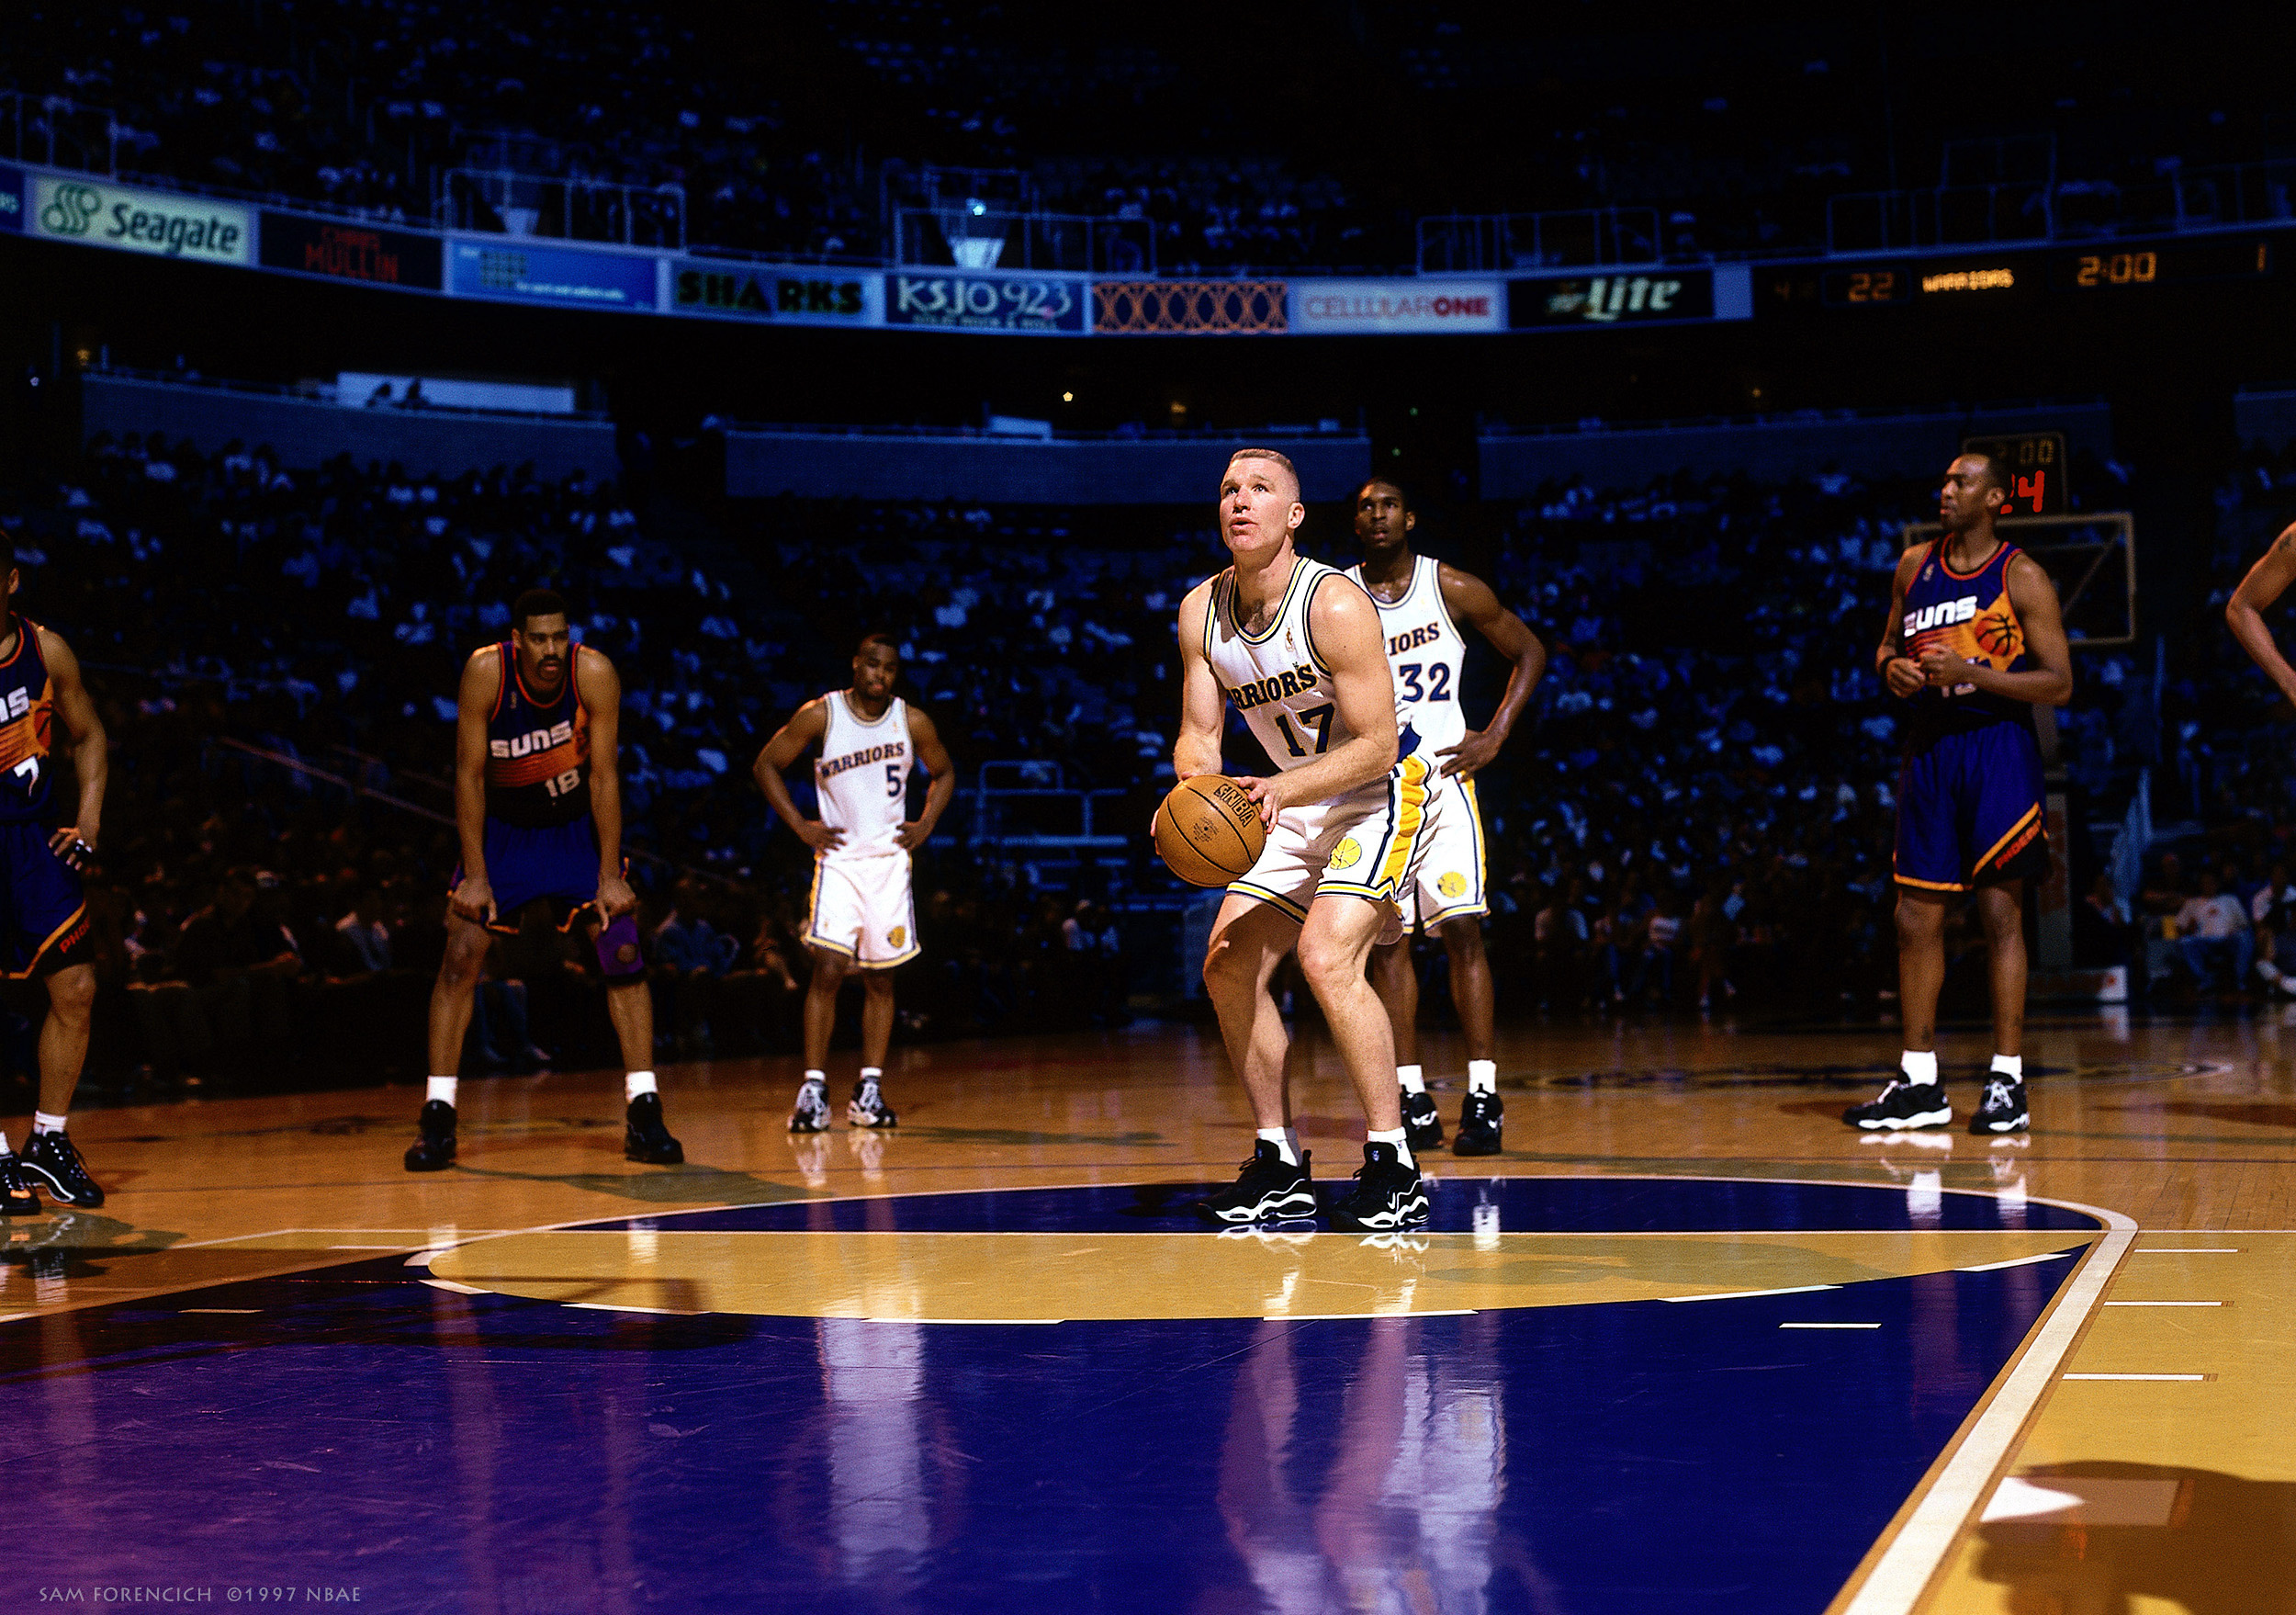 San Jose, CA - Chris Mullin #17 of the Golden State Warriors shoots a foul shot during a 1997 NBA game against the Phoenix Suns at the San Jose Arena. Manually focused Hasselblad, RDP 100 film, gelled arena strobe lighting.  Sam Forencich ©1997 NBAE